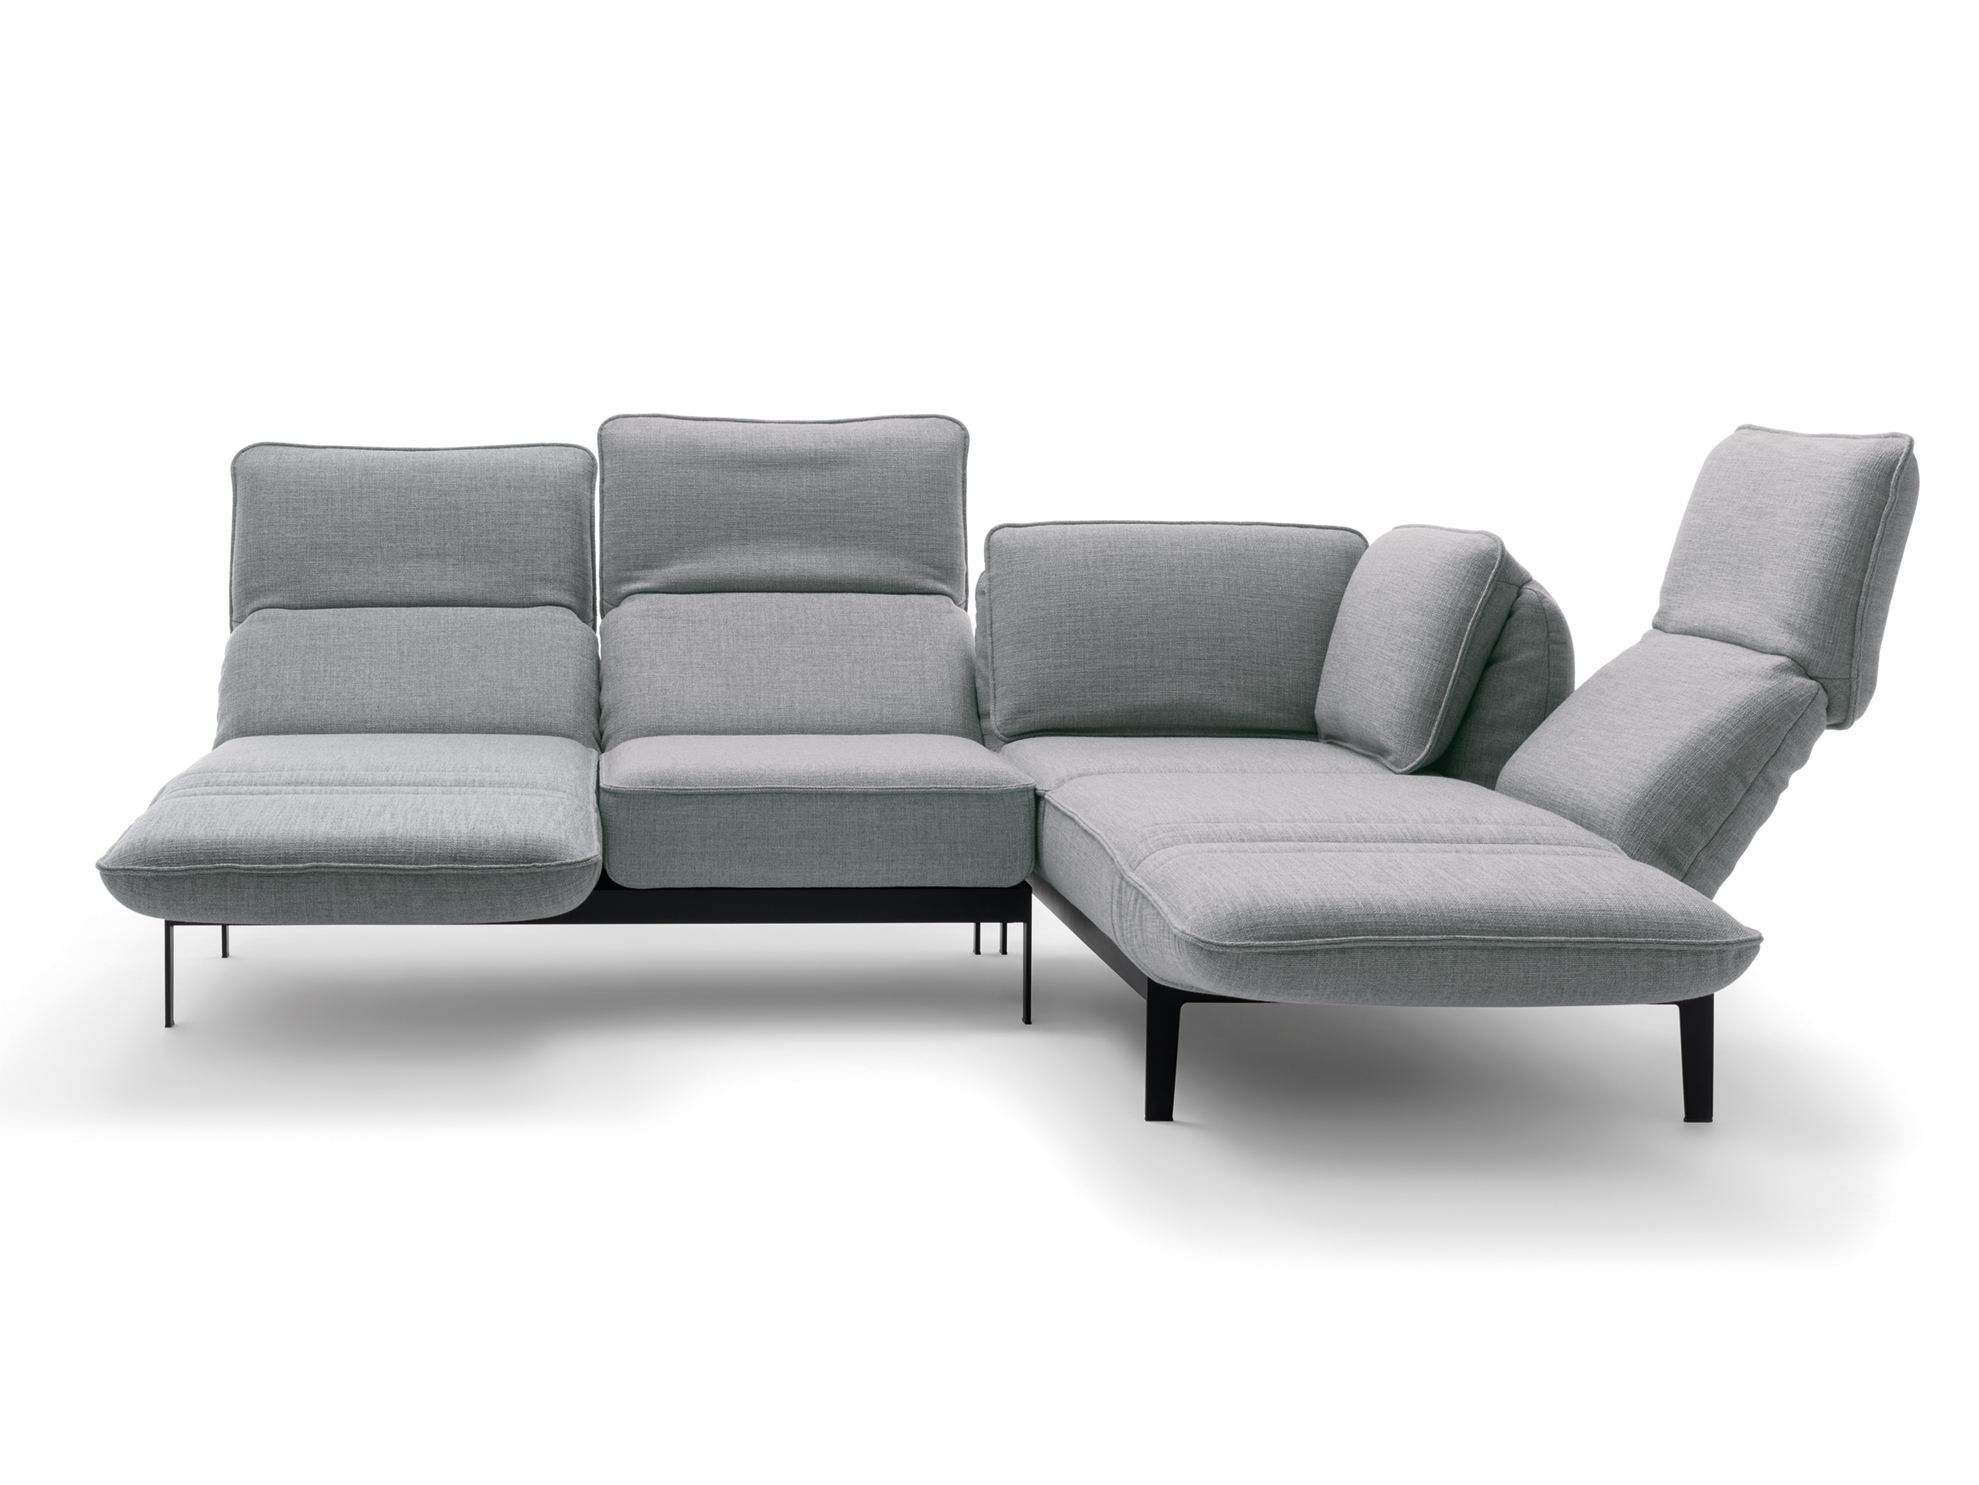 Mera Corner Sofa Mera Collection By Rolf Benz Design